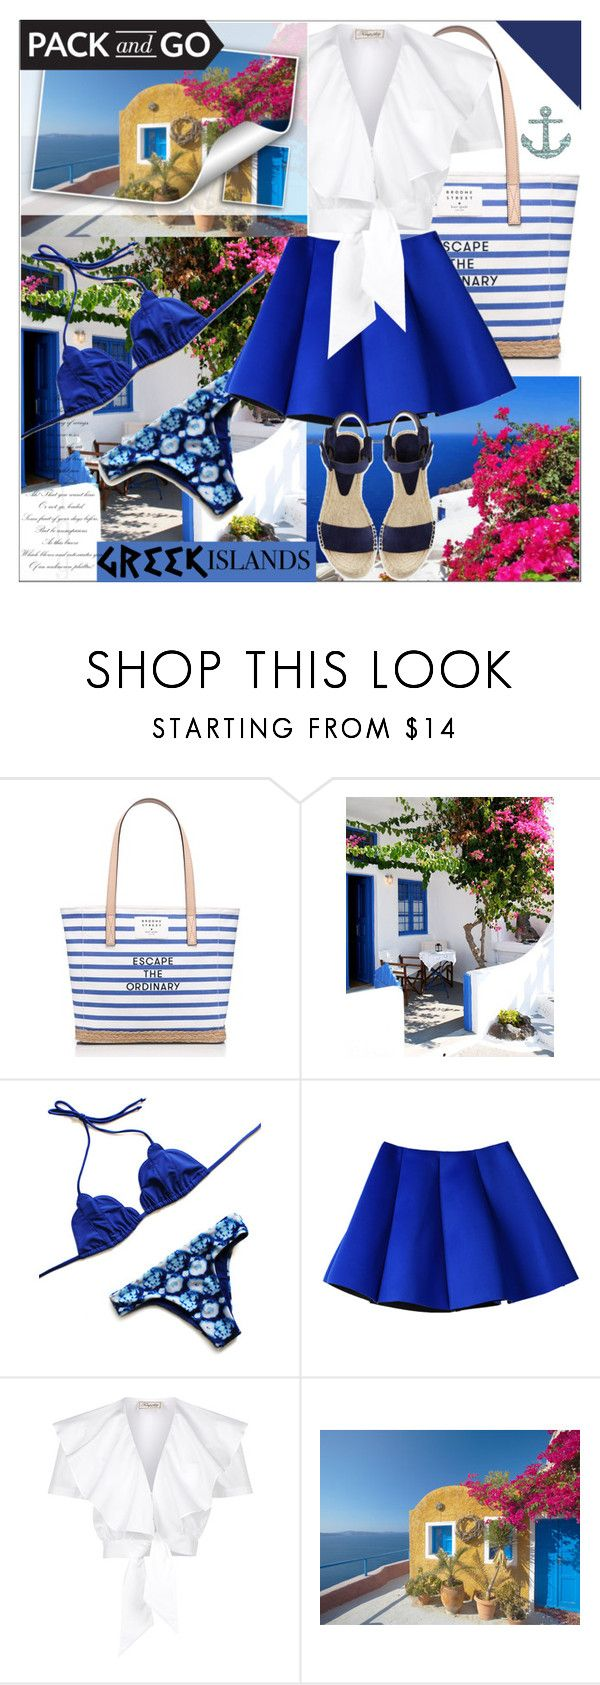 """""""Greek Island Pack and Go"""" by arohii ❤ liked on Polyvore featuring Kate Spade, WALL, Temperley London, Vince, polyvoreeditorial, polyvorecontest, Packandgo and greekislands"""